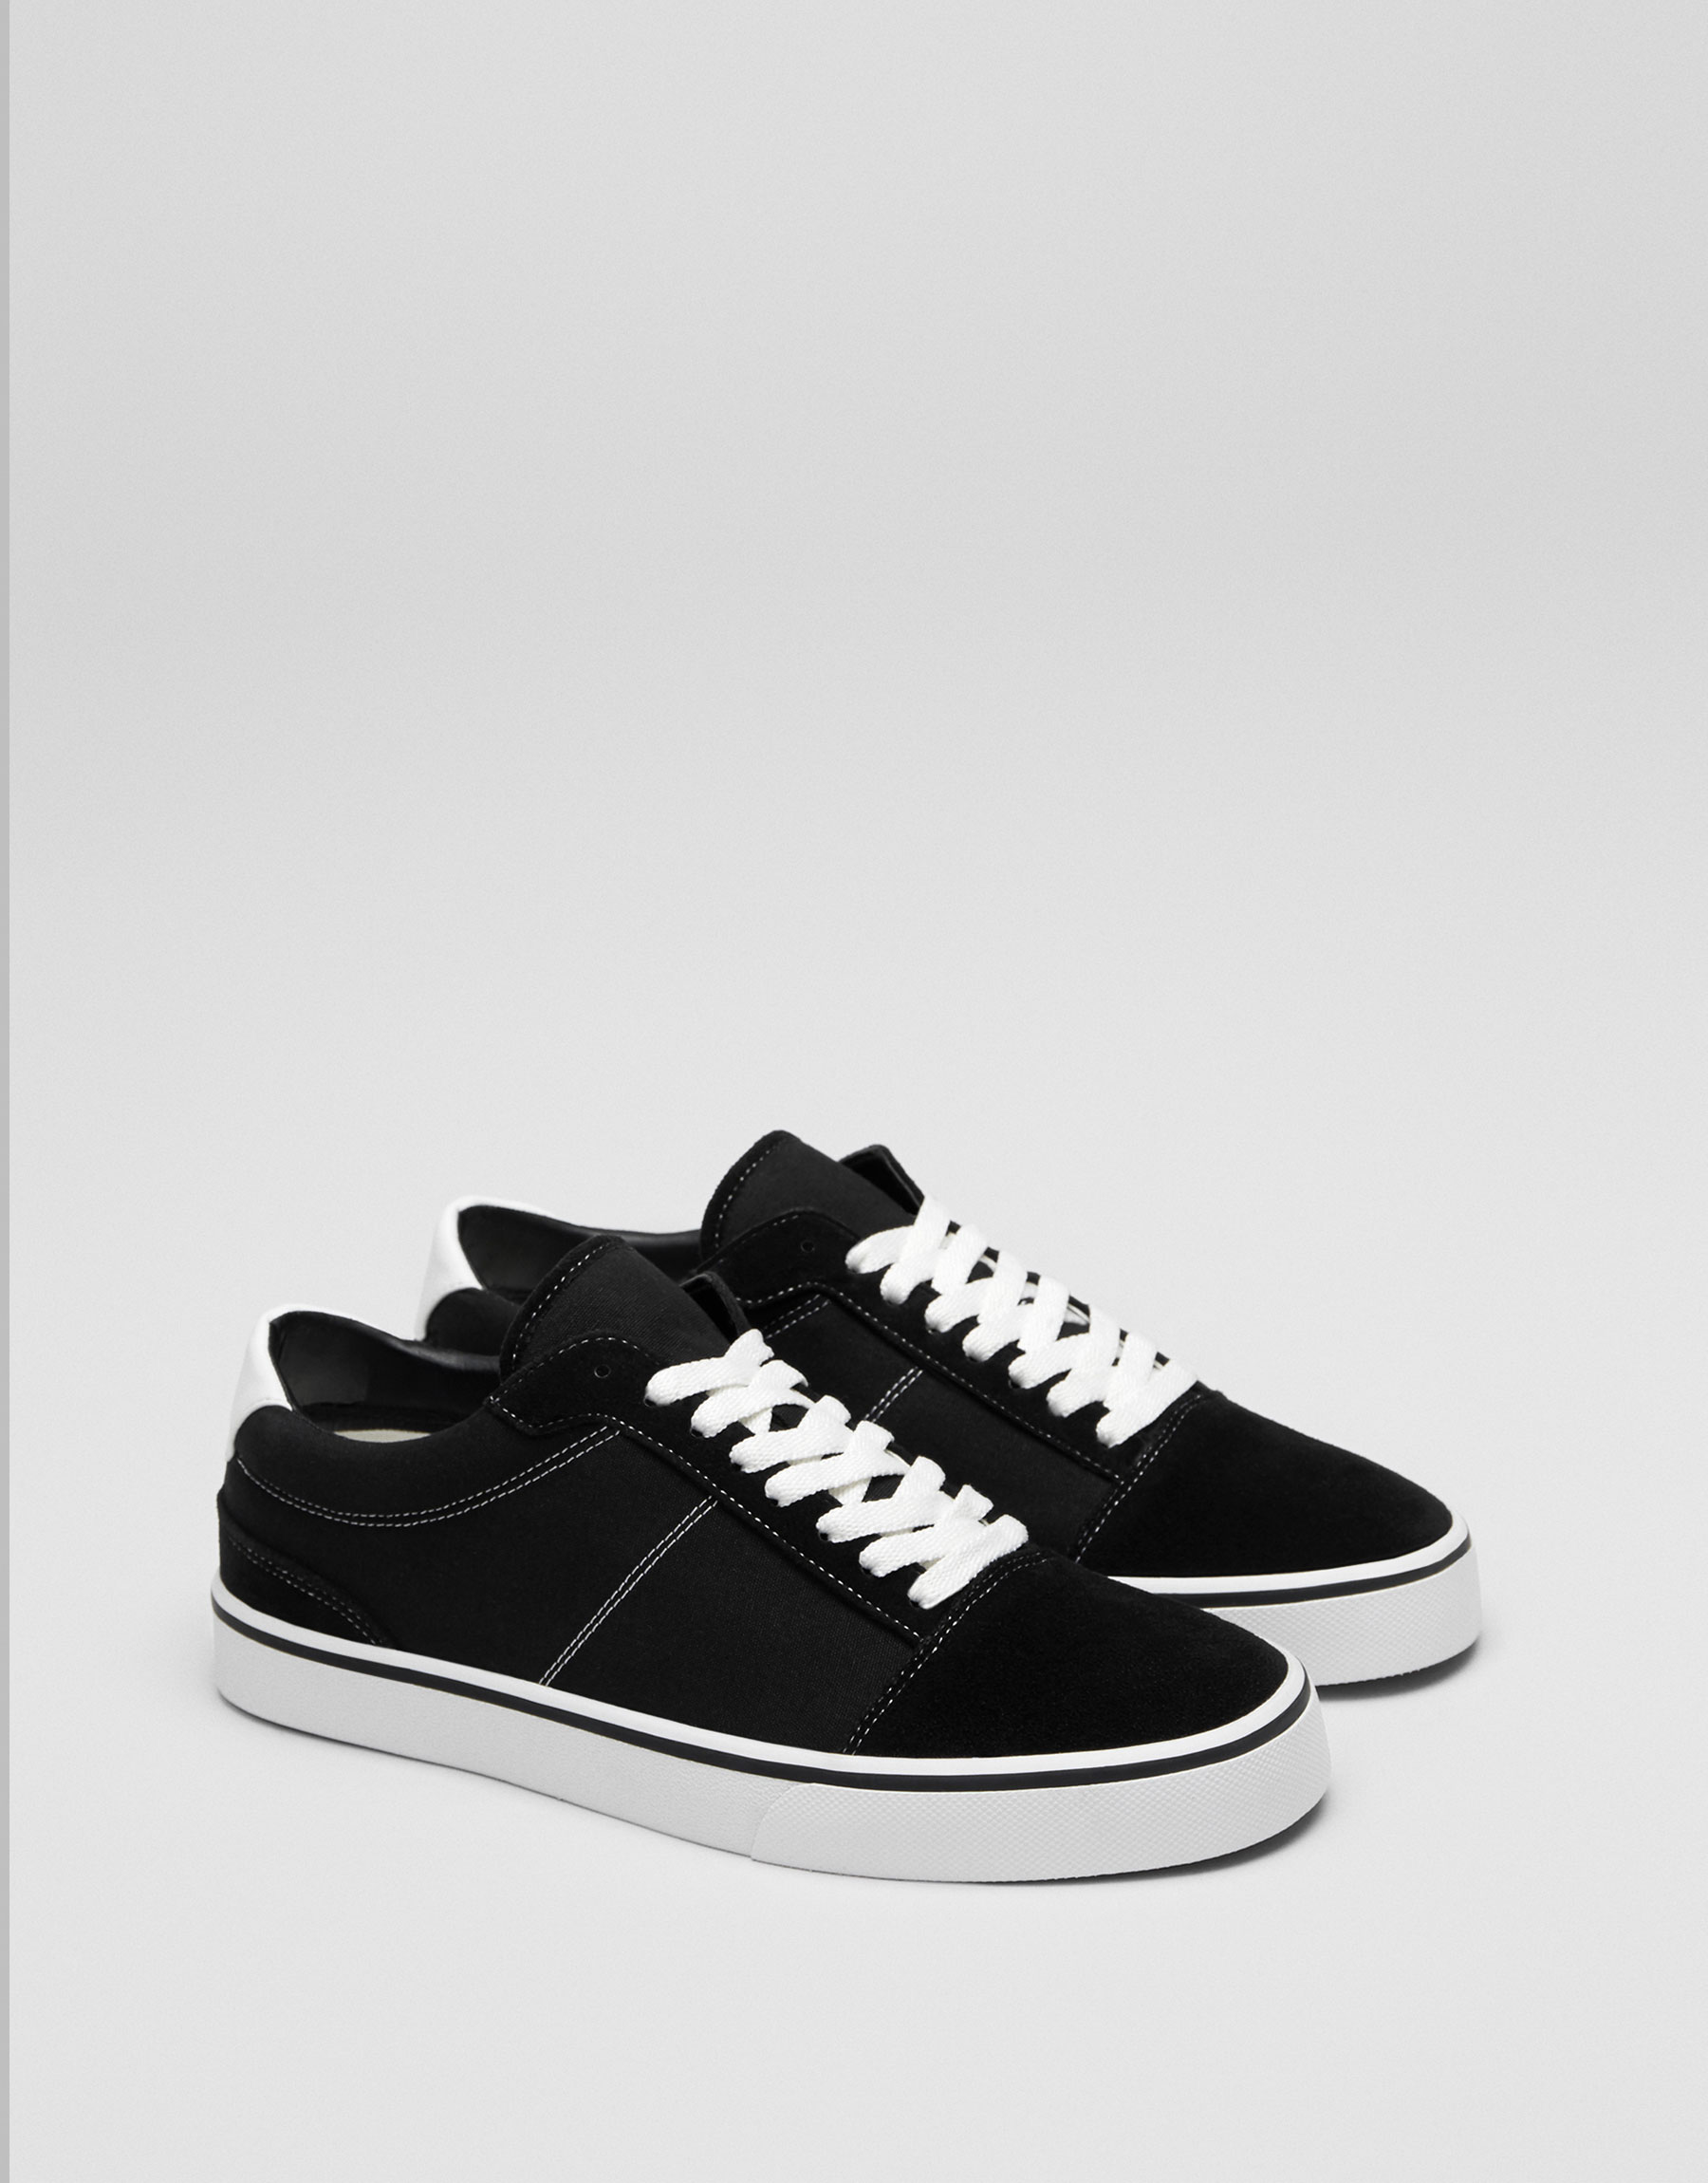 Black university plimsolls